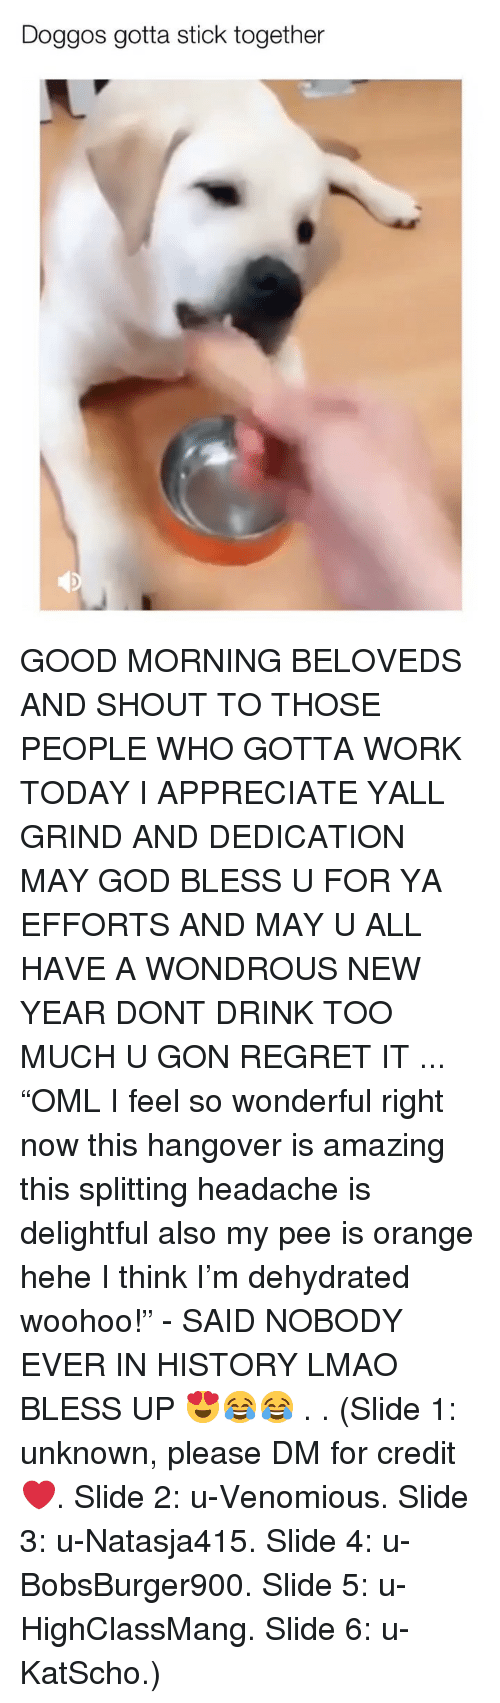 "Bless Up, God, and Lmao: Doggos gotta stick together GOOD MORNING BELOVEDS AND SHOUT TO THOSE PEOPLE WHO GOTTA WORK TODAY I APPRECIATE YALL GRIND AND DEDICATION MAY GOD BLESS U FOR YA EFFORTS AND MAY U ALL HAVE A WONDROUS NEW YEAR DONT DRINK TOO MUCH U GON REGRET IT ... ""OML I feel so wonderful right now this hangover is amazing this splitting headache is delightful also my pee is orange hehe I think I'm dehydrated woohoo!"" - SAID NOBODY EVER IN HISTORY LMAO BLESS UP 😍😂😂 . . (Slide 1: unknown, please DM for credit ❤️. Slide 2: u-Venomious. Slide 3: u-Natasja415. Slide 4: u-BobsBurger900. Slide 5: u-HighClassMang. Slide 6: u-KatScho.)"